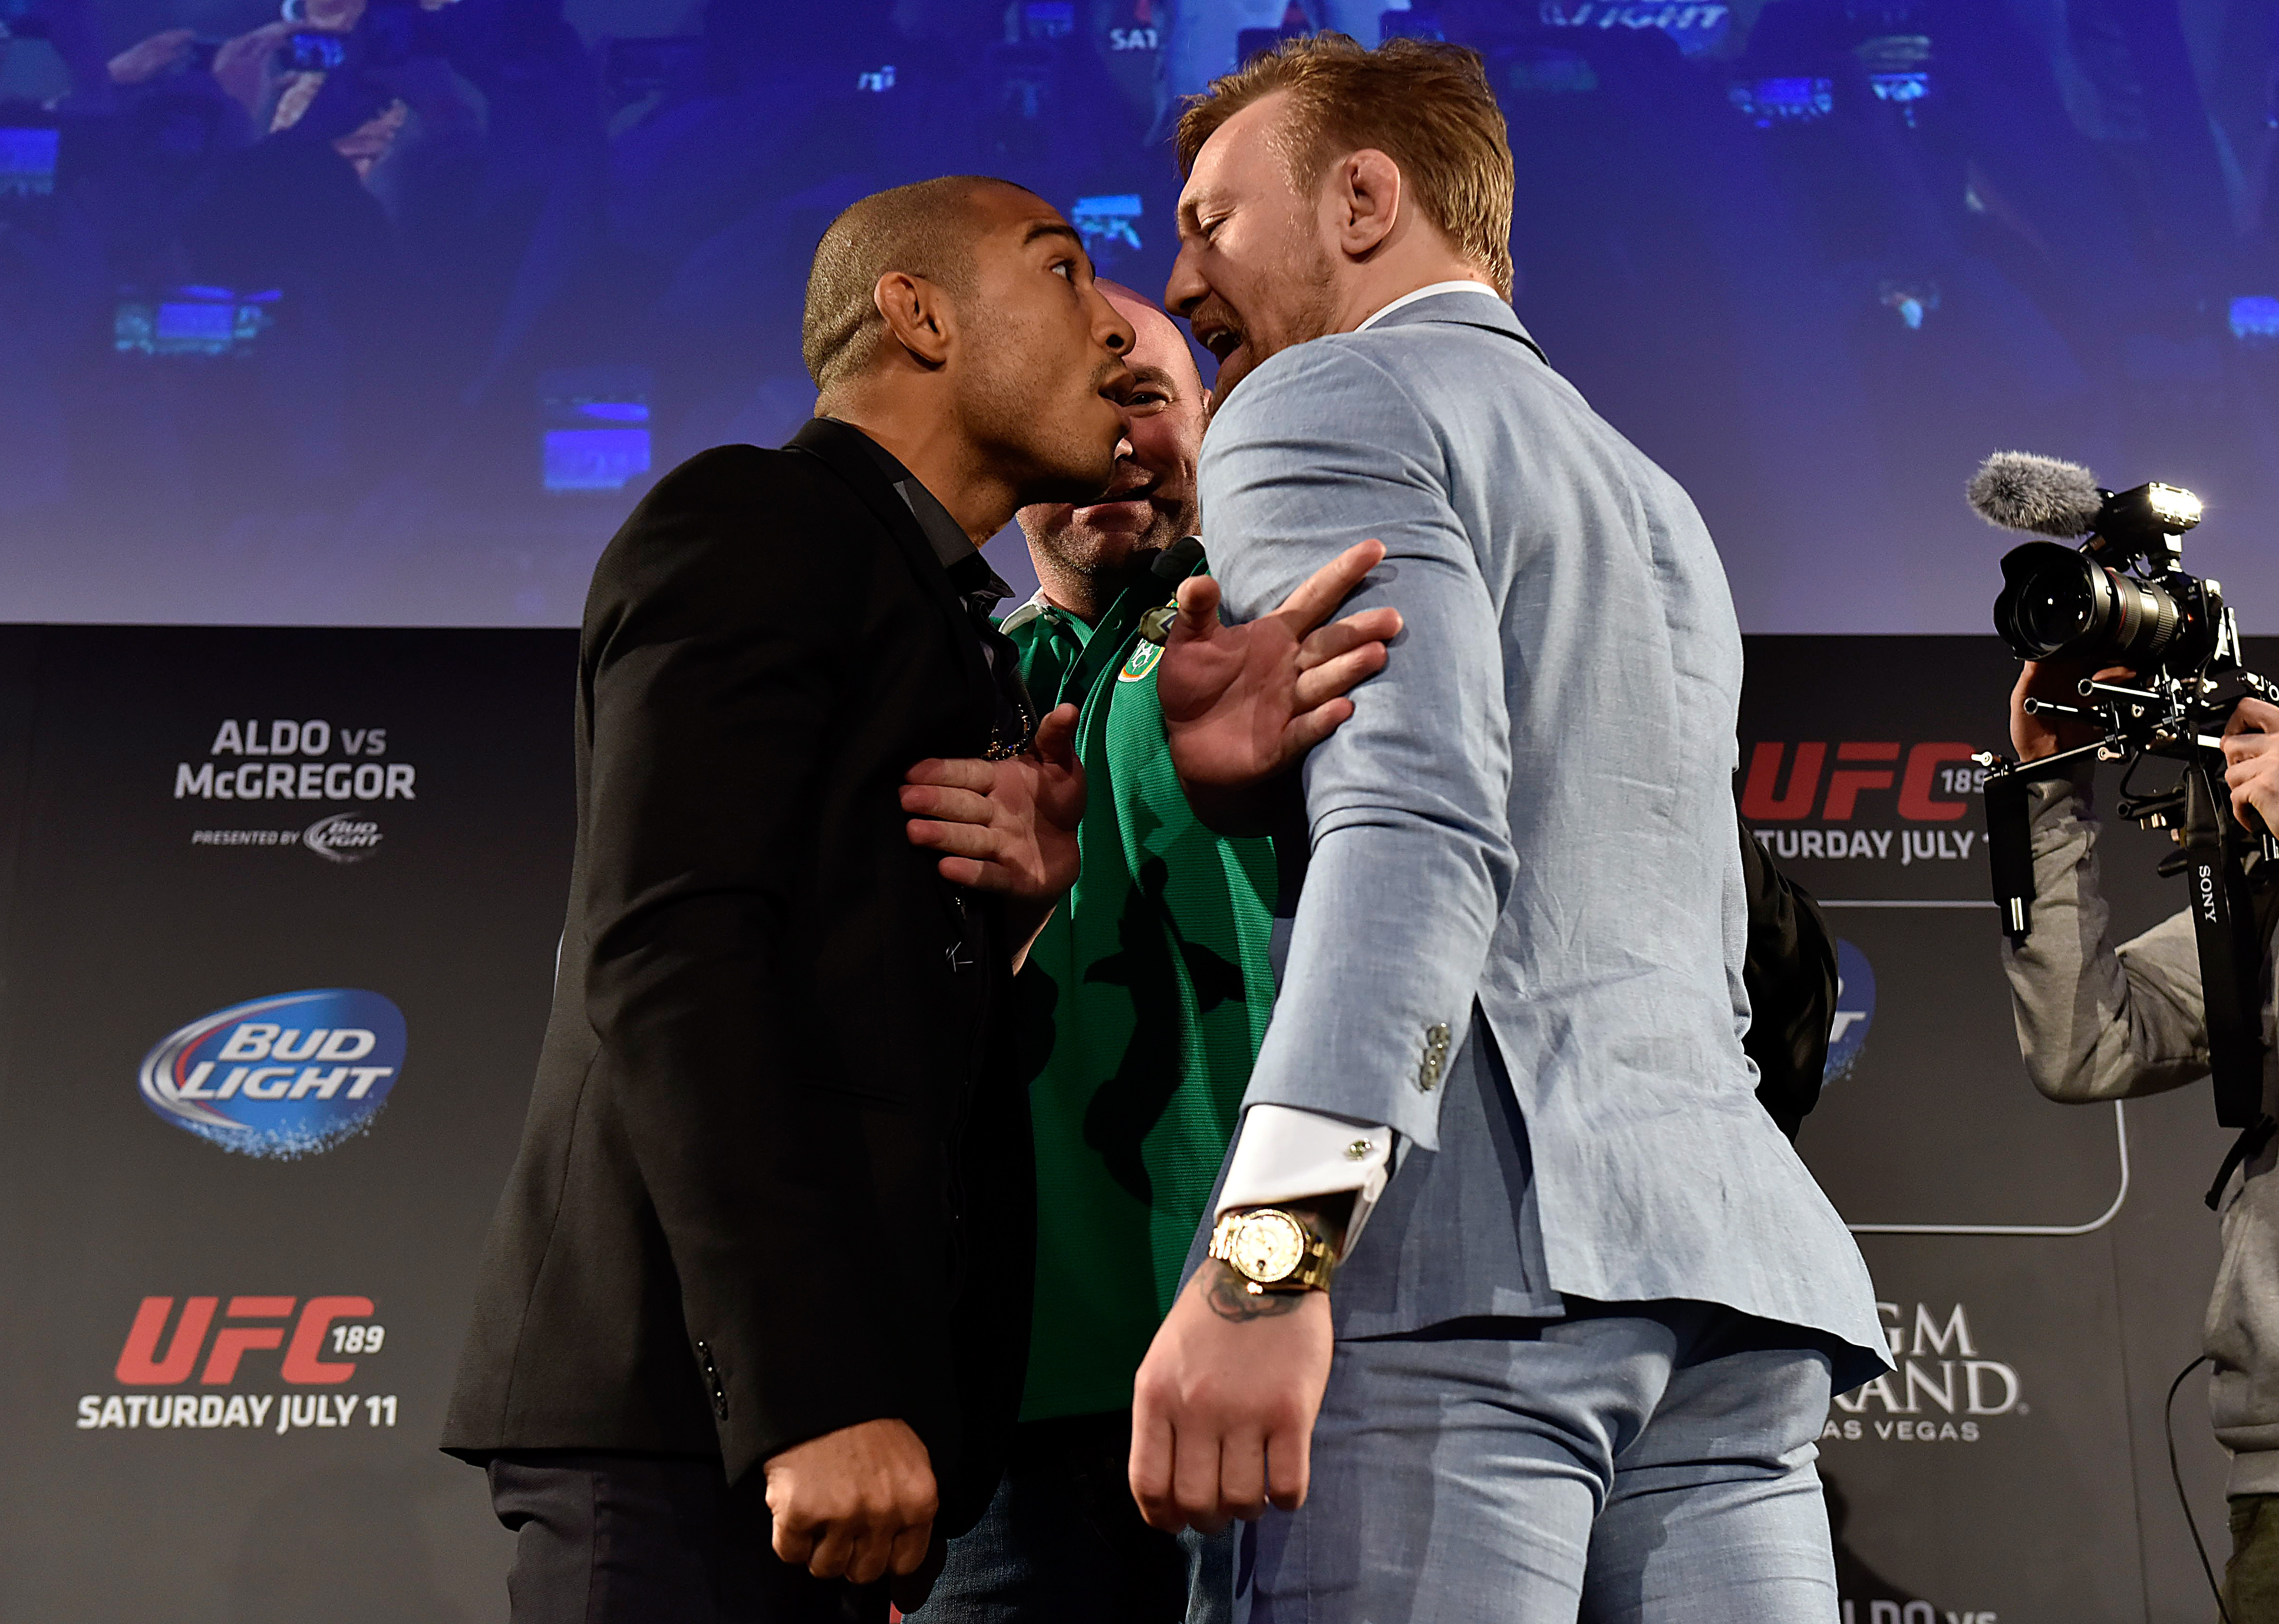 UFC President Dana White (C) separates UFC Featherweight Champion Jose Aldo of Brazil (L) and title challenger Conor 'The Notorious' McGregor of Ireland (R) as they face off during the UFC 189 World Championship Fan Event on March 31, 2015 in Dublin, Ireland. (Photo by Jeff Bottari/Zuffa LLC)